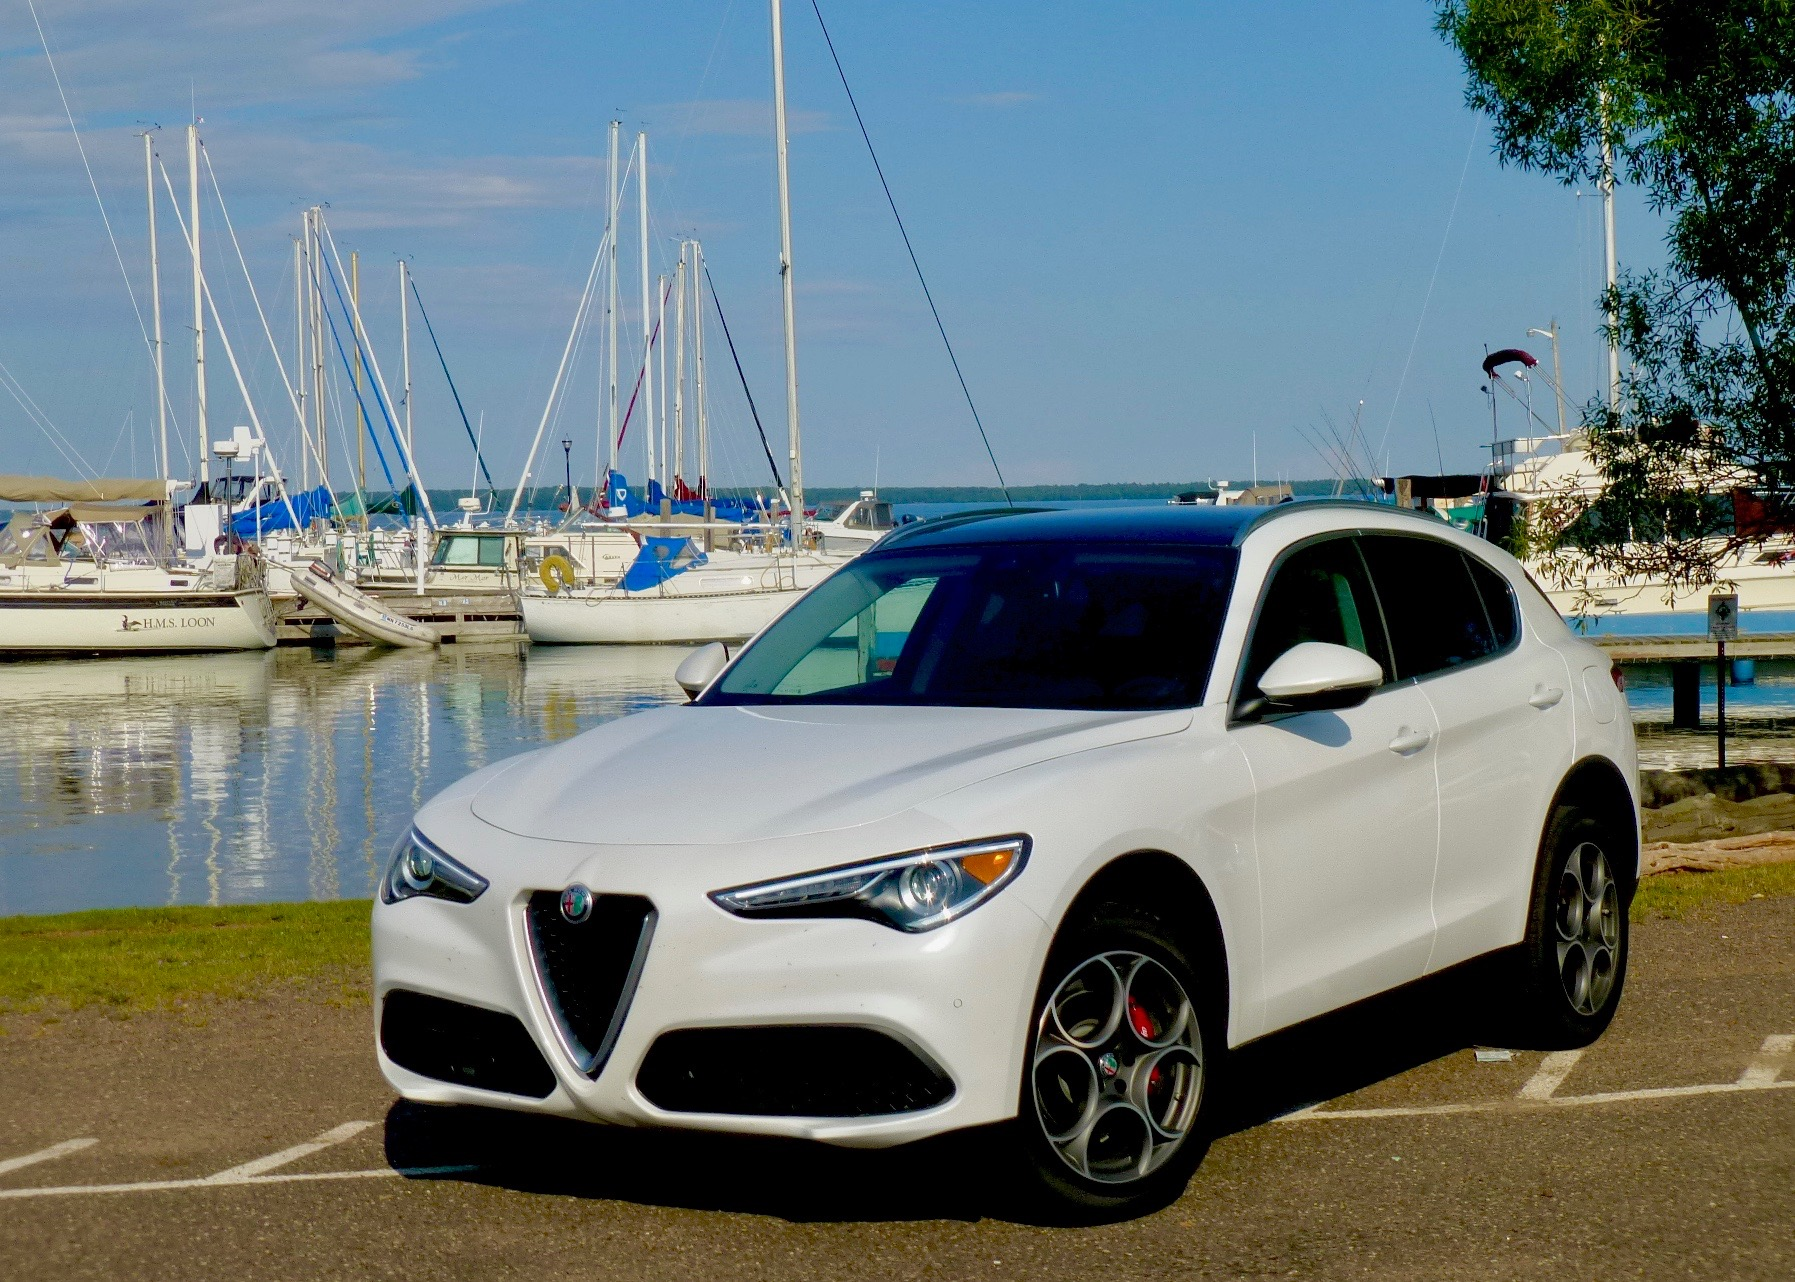 Alfa's new Stelvio Ti flashes familiar face, but it is a high-tech SUV for 2018.